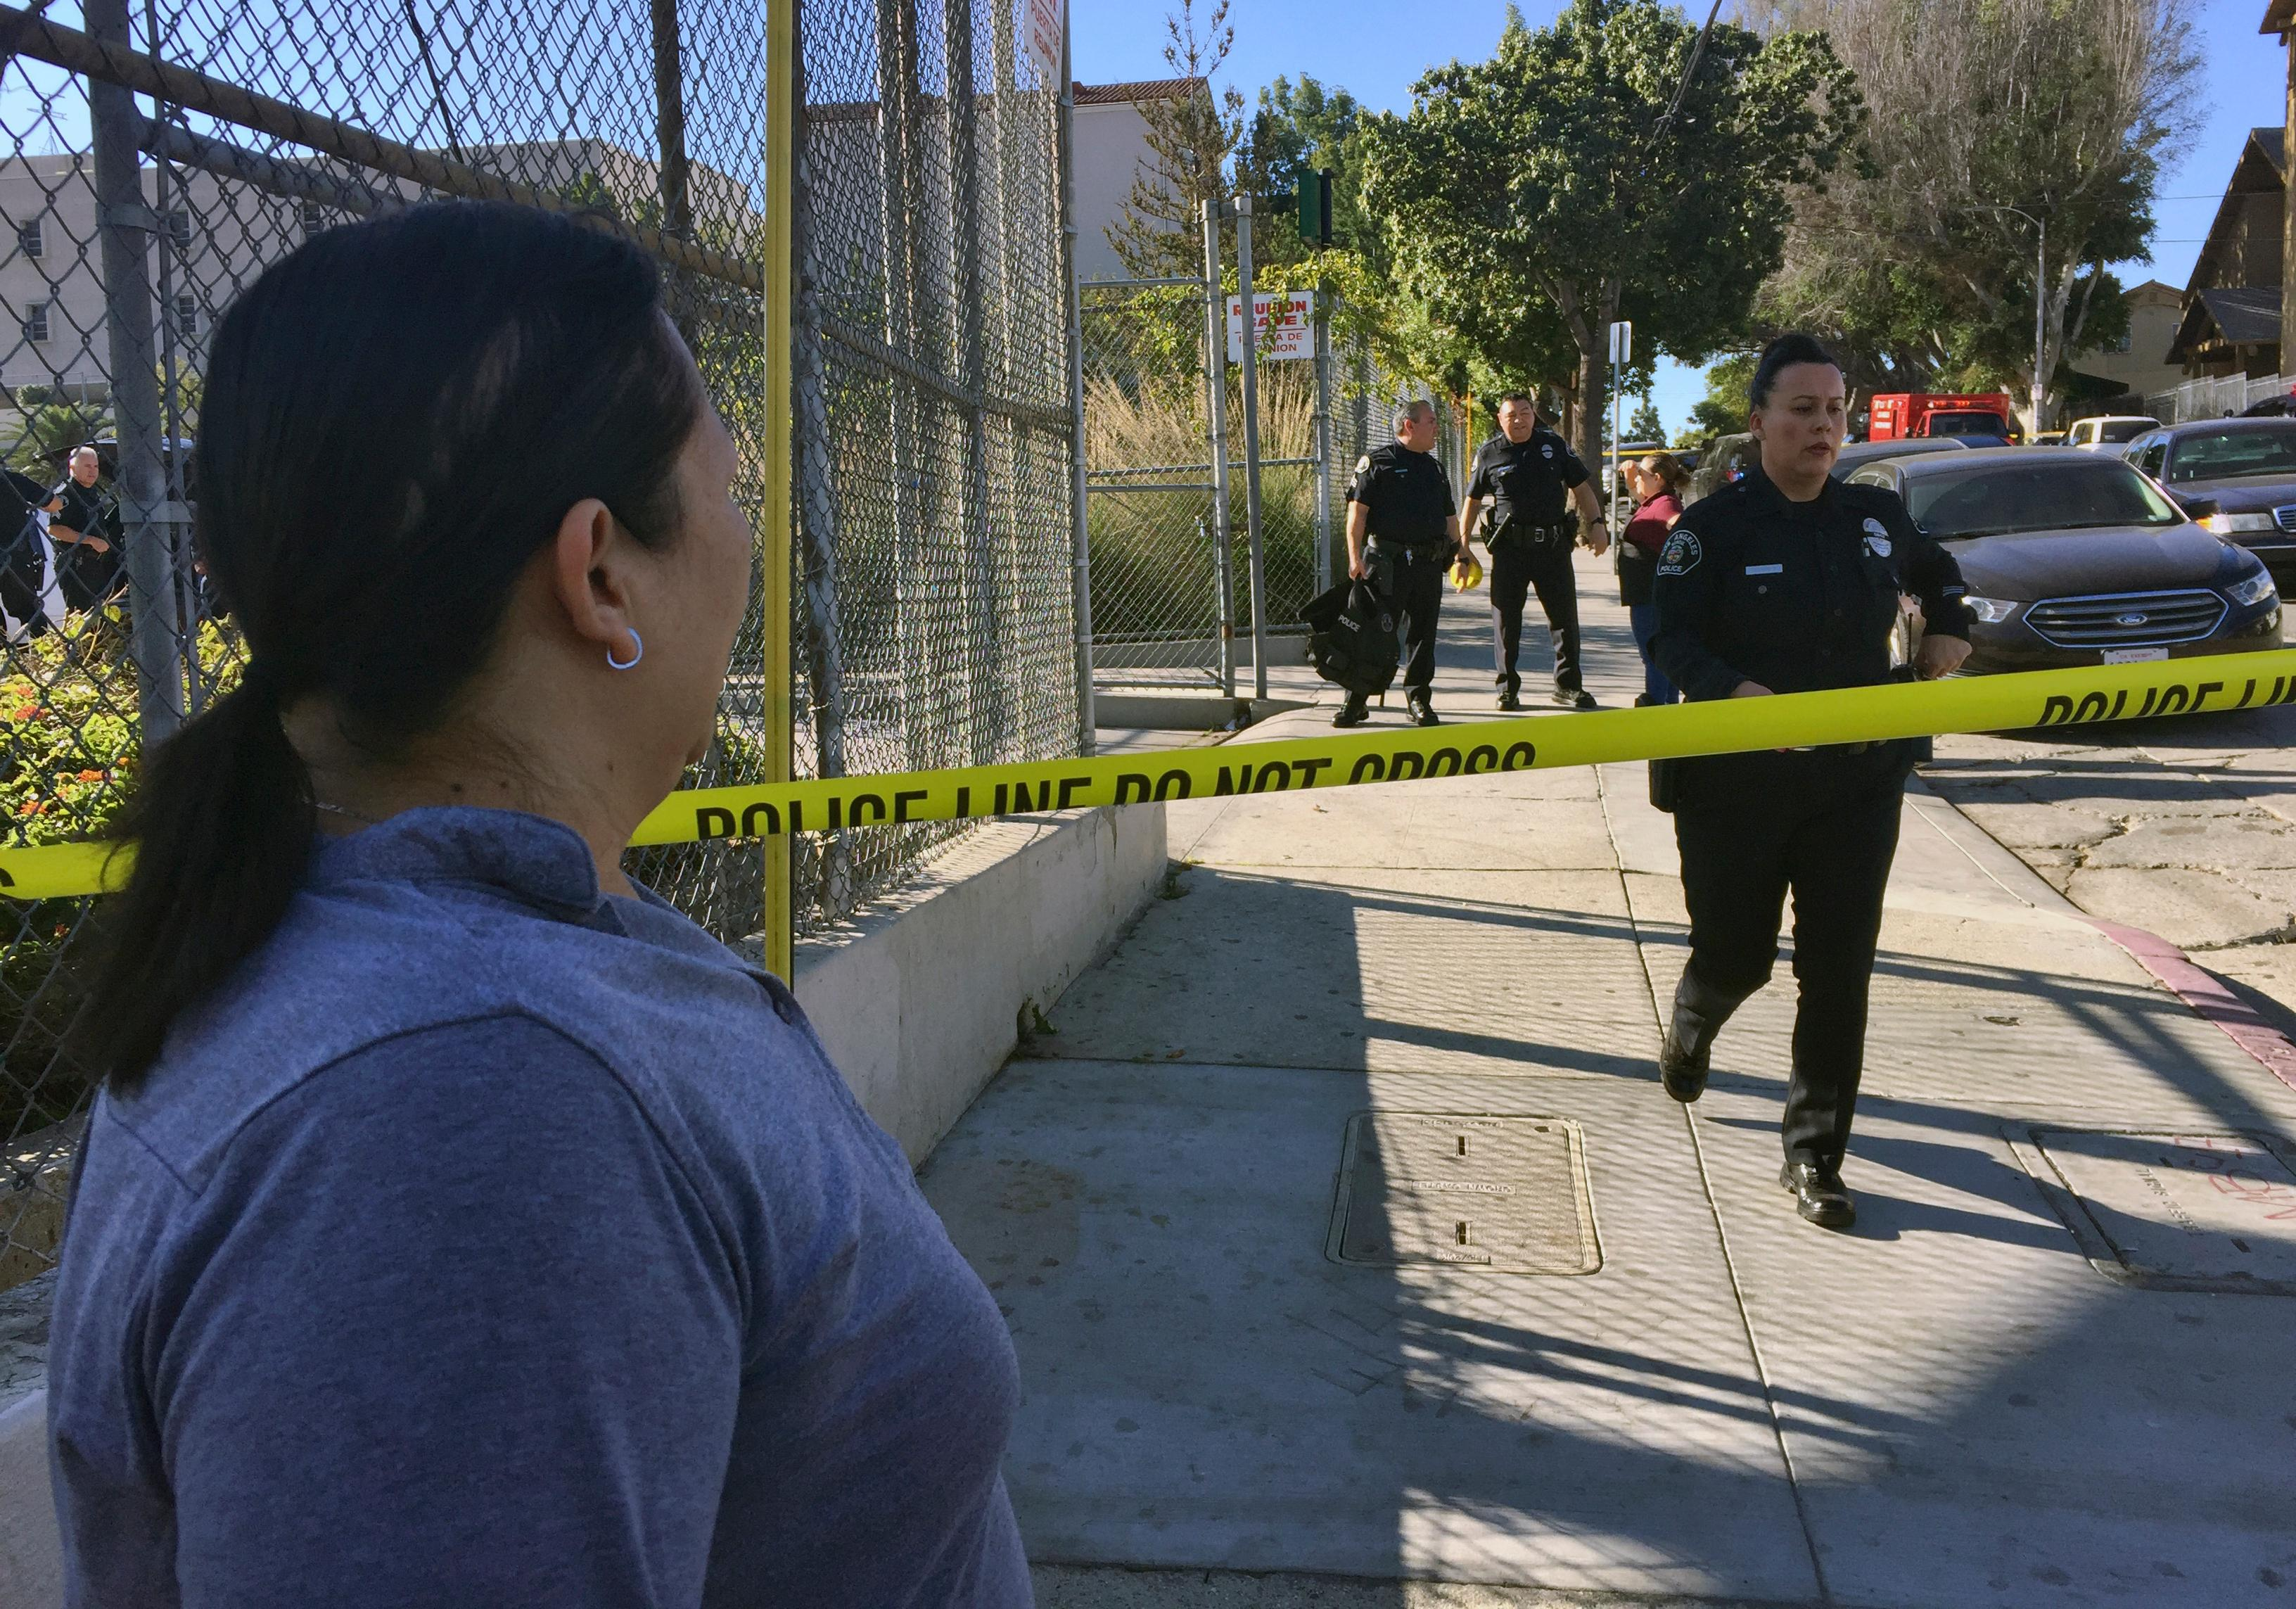 Gloria Echeverria watches as Los Angeles police officers close off a street where a shooting occurred at a middle school in Los Angeles on Thursday, Feb. 1, 2018. Two students were shot inside the middle school classroom Thursday morning and police arrested a female student suspect, authorities said. (AP Photo/Amanda Lee Myers)